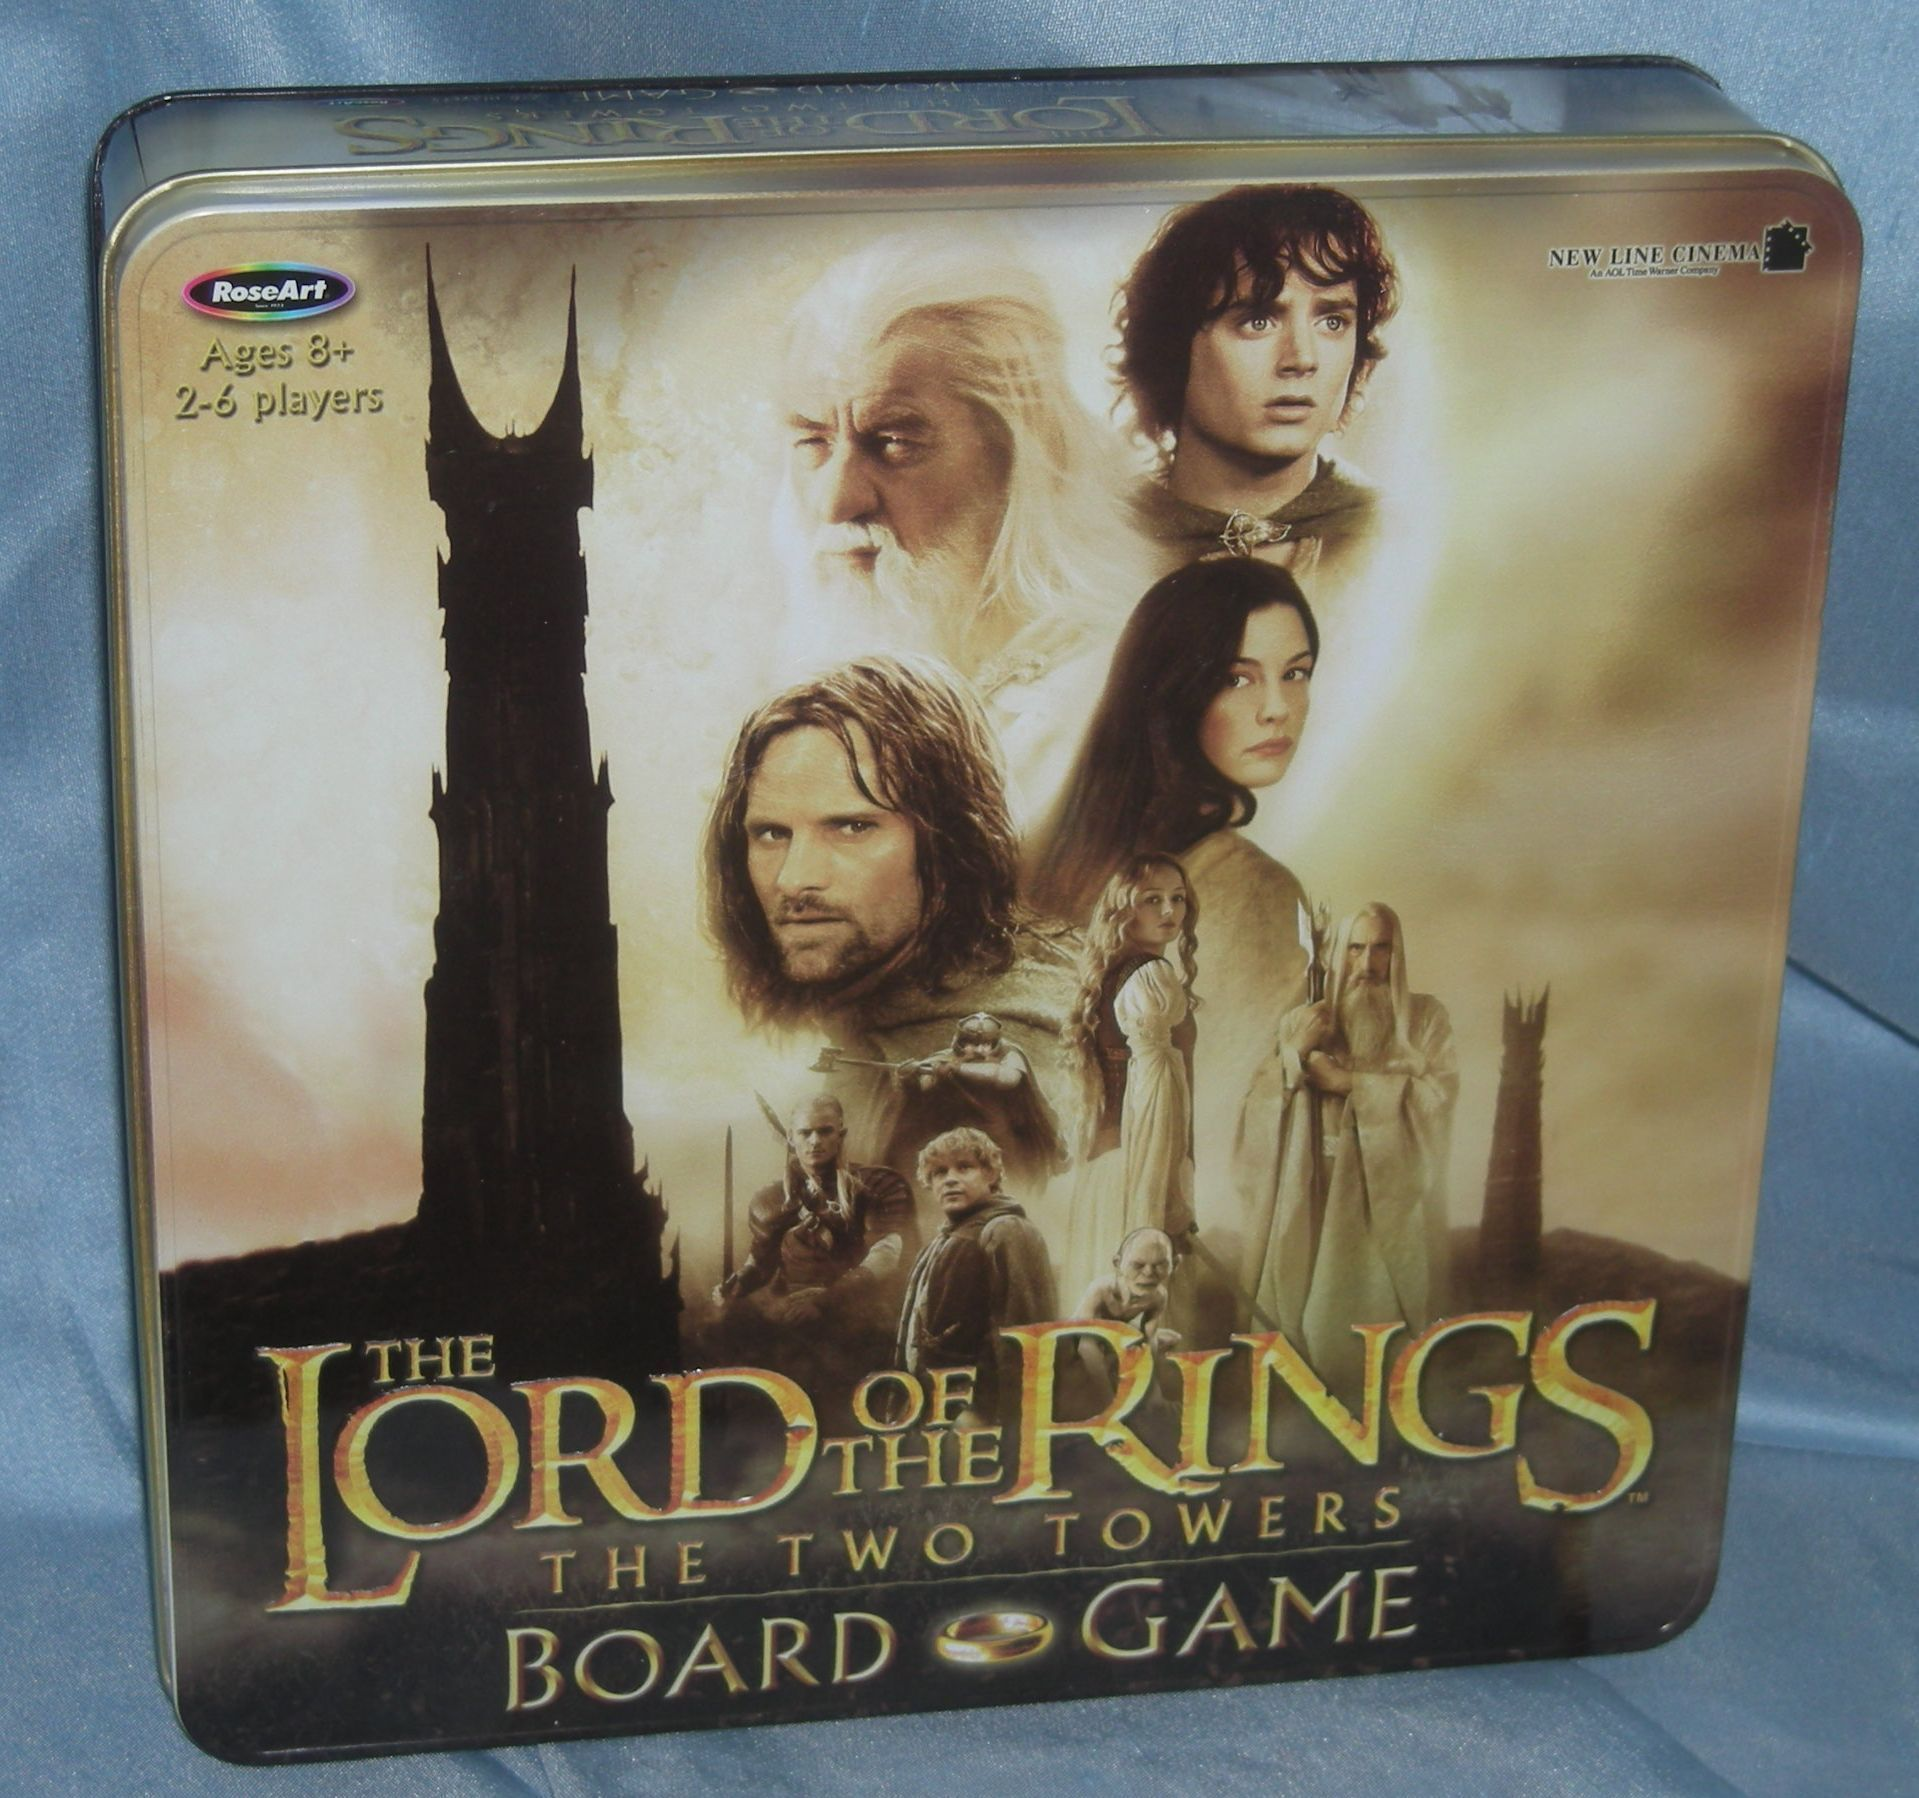 The Lord of the Rings: The Two Towers Board Game